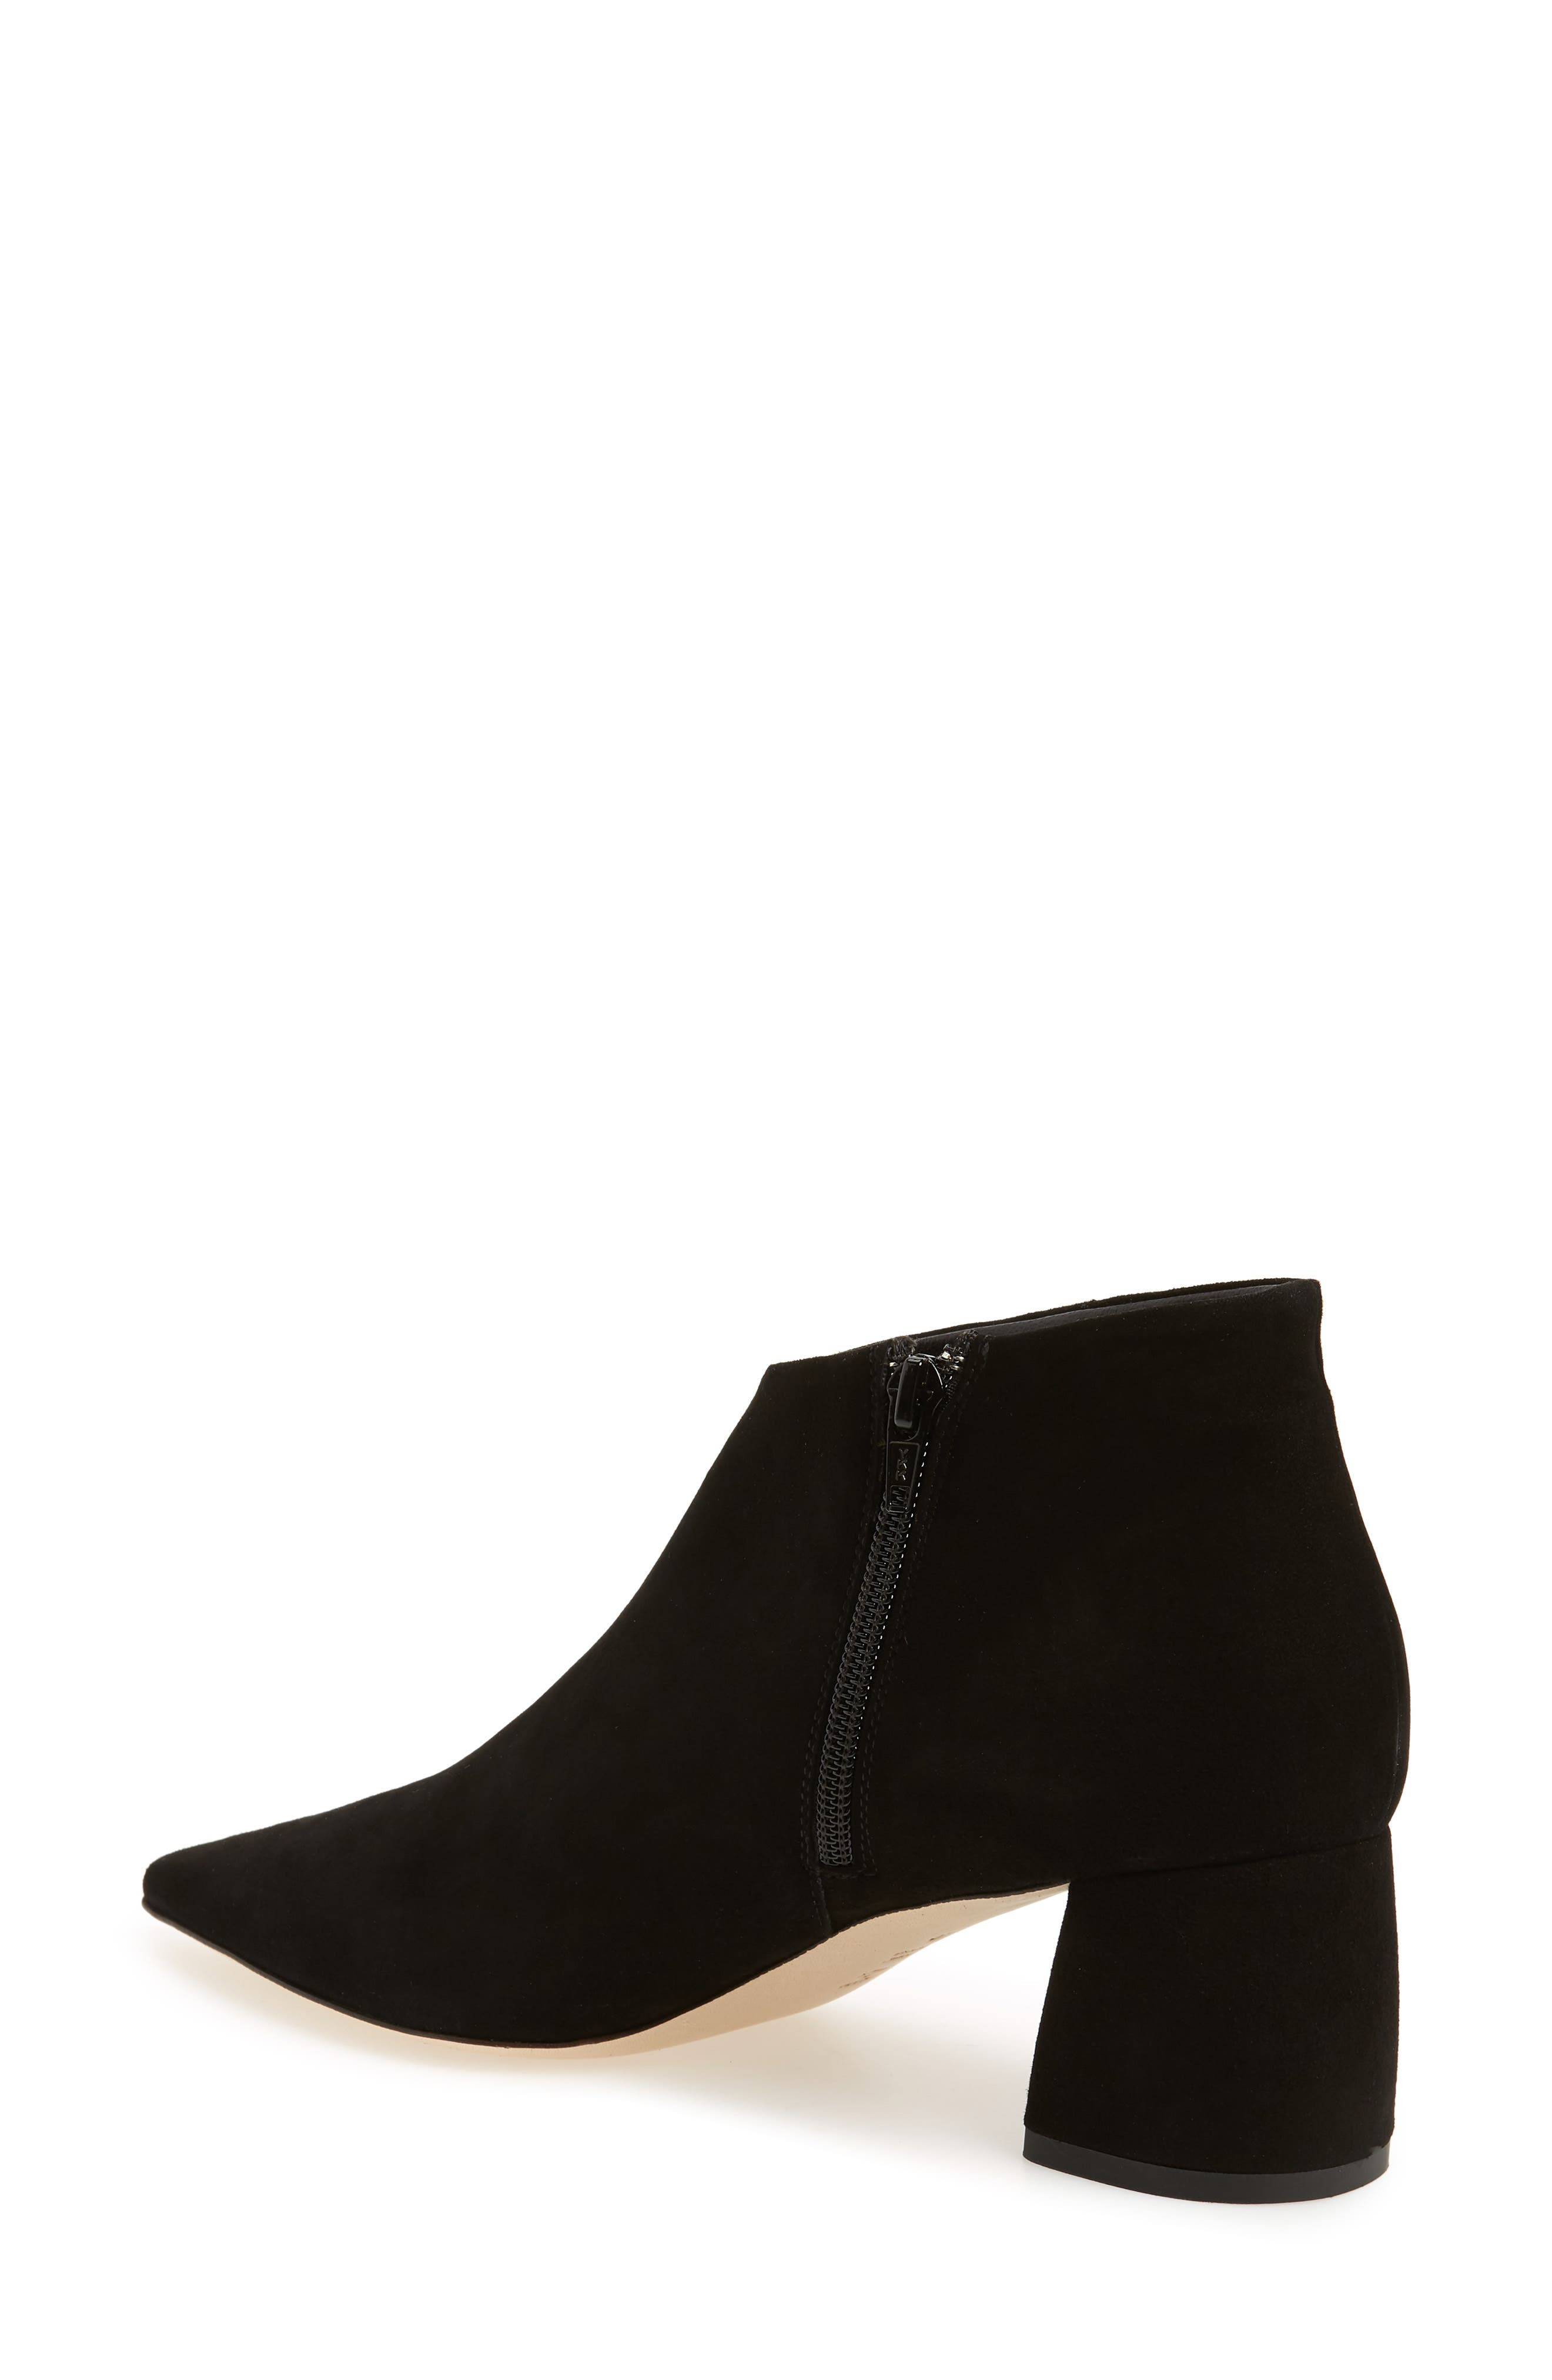 Butter Whistle Pointy Toe Bootie,                             Alternate thumbnail 2, color,                             001